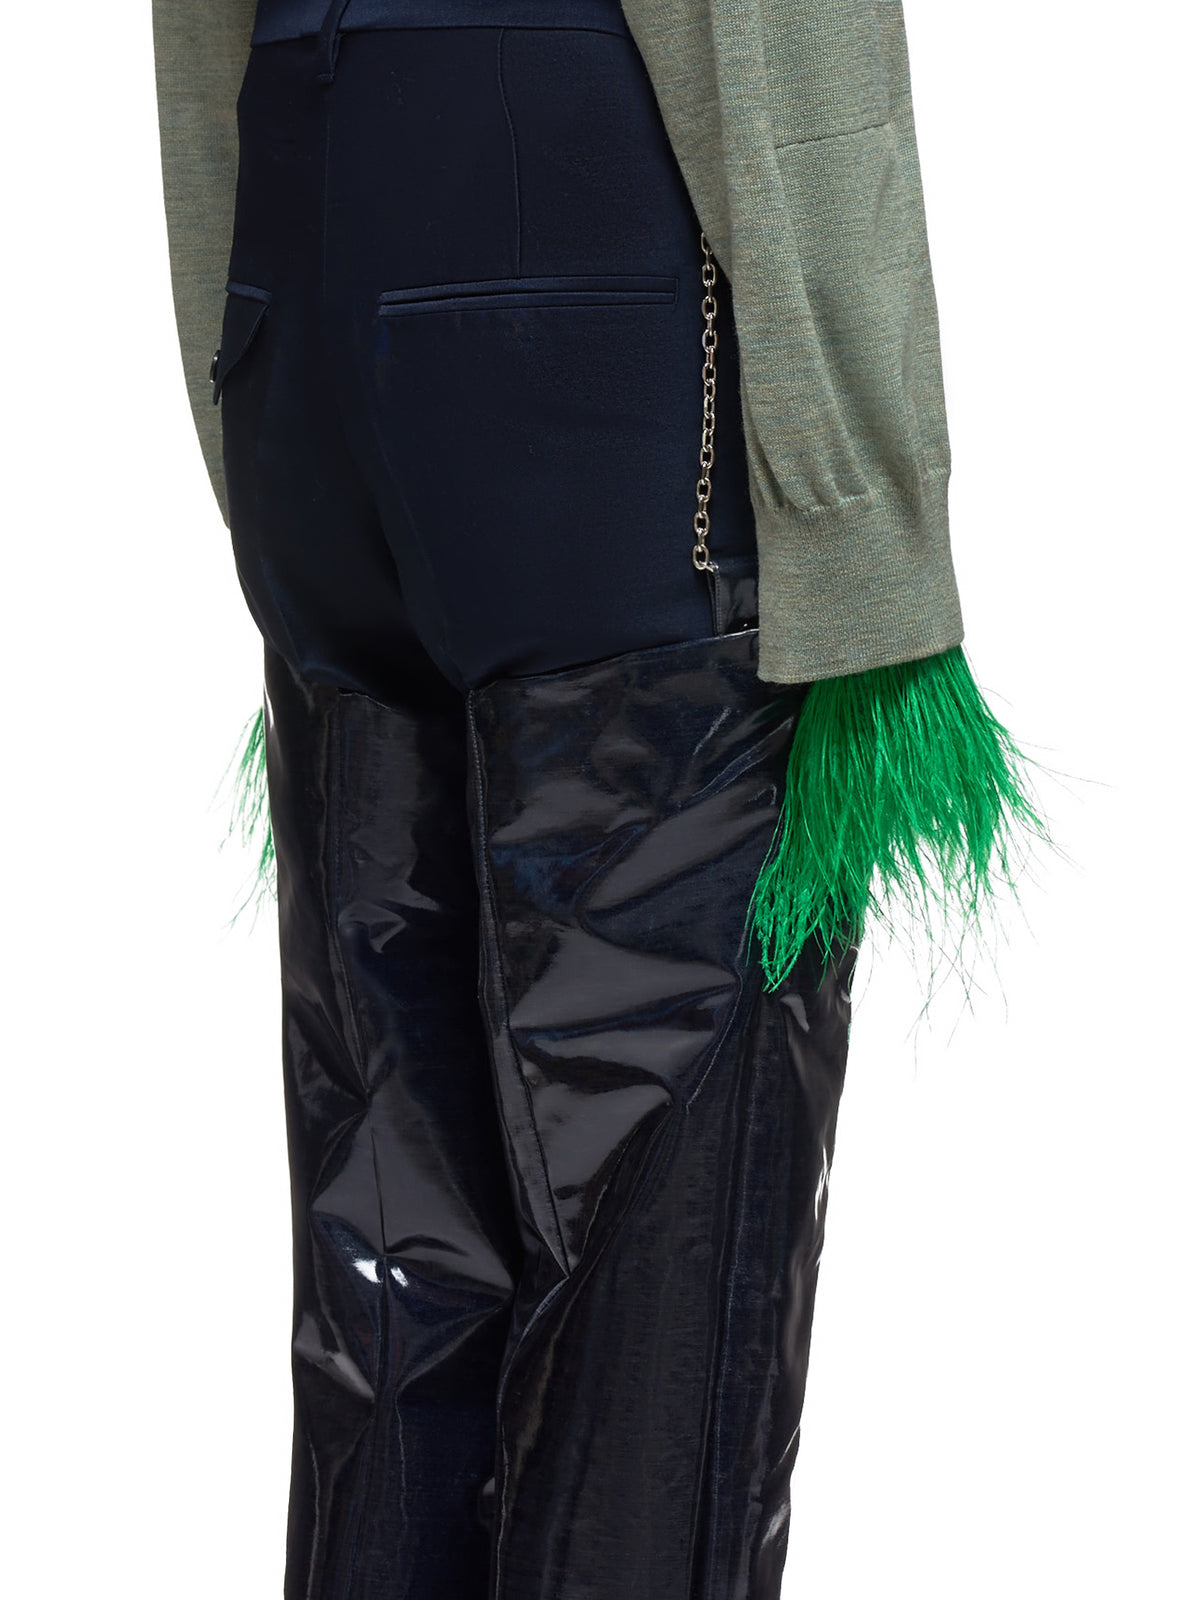 Toga Archives Pants - Hlorenzo Detail 2